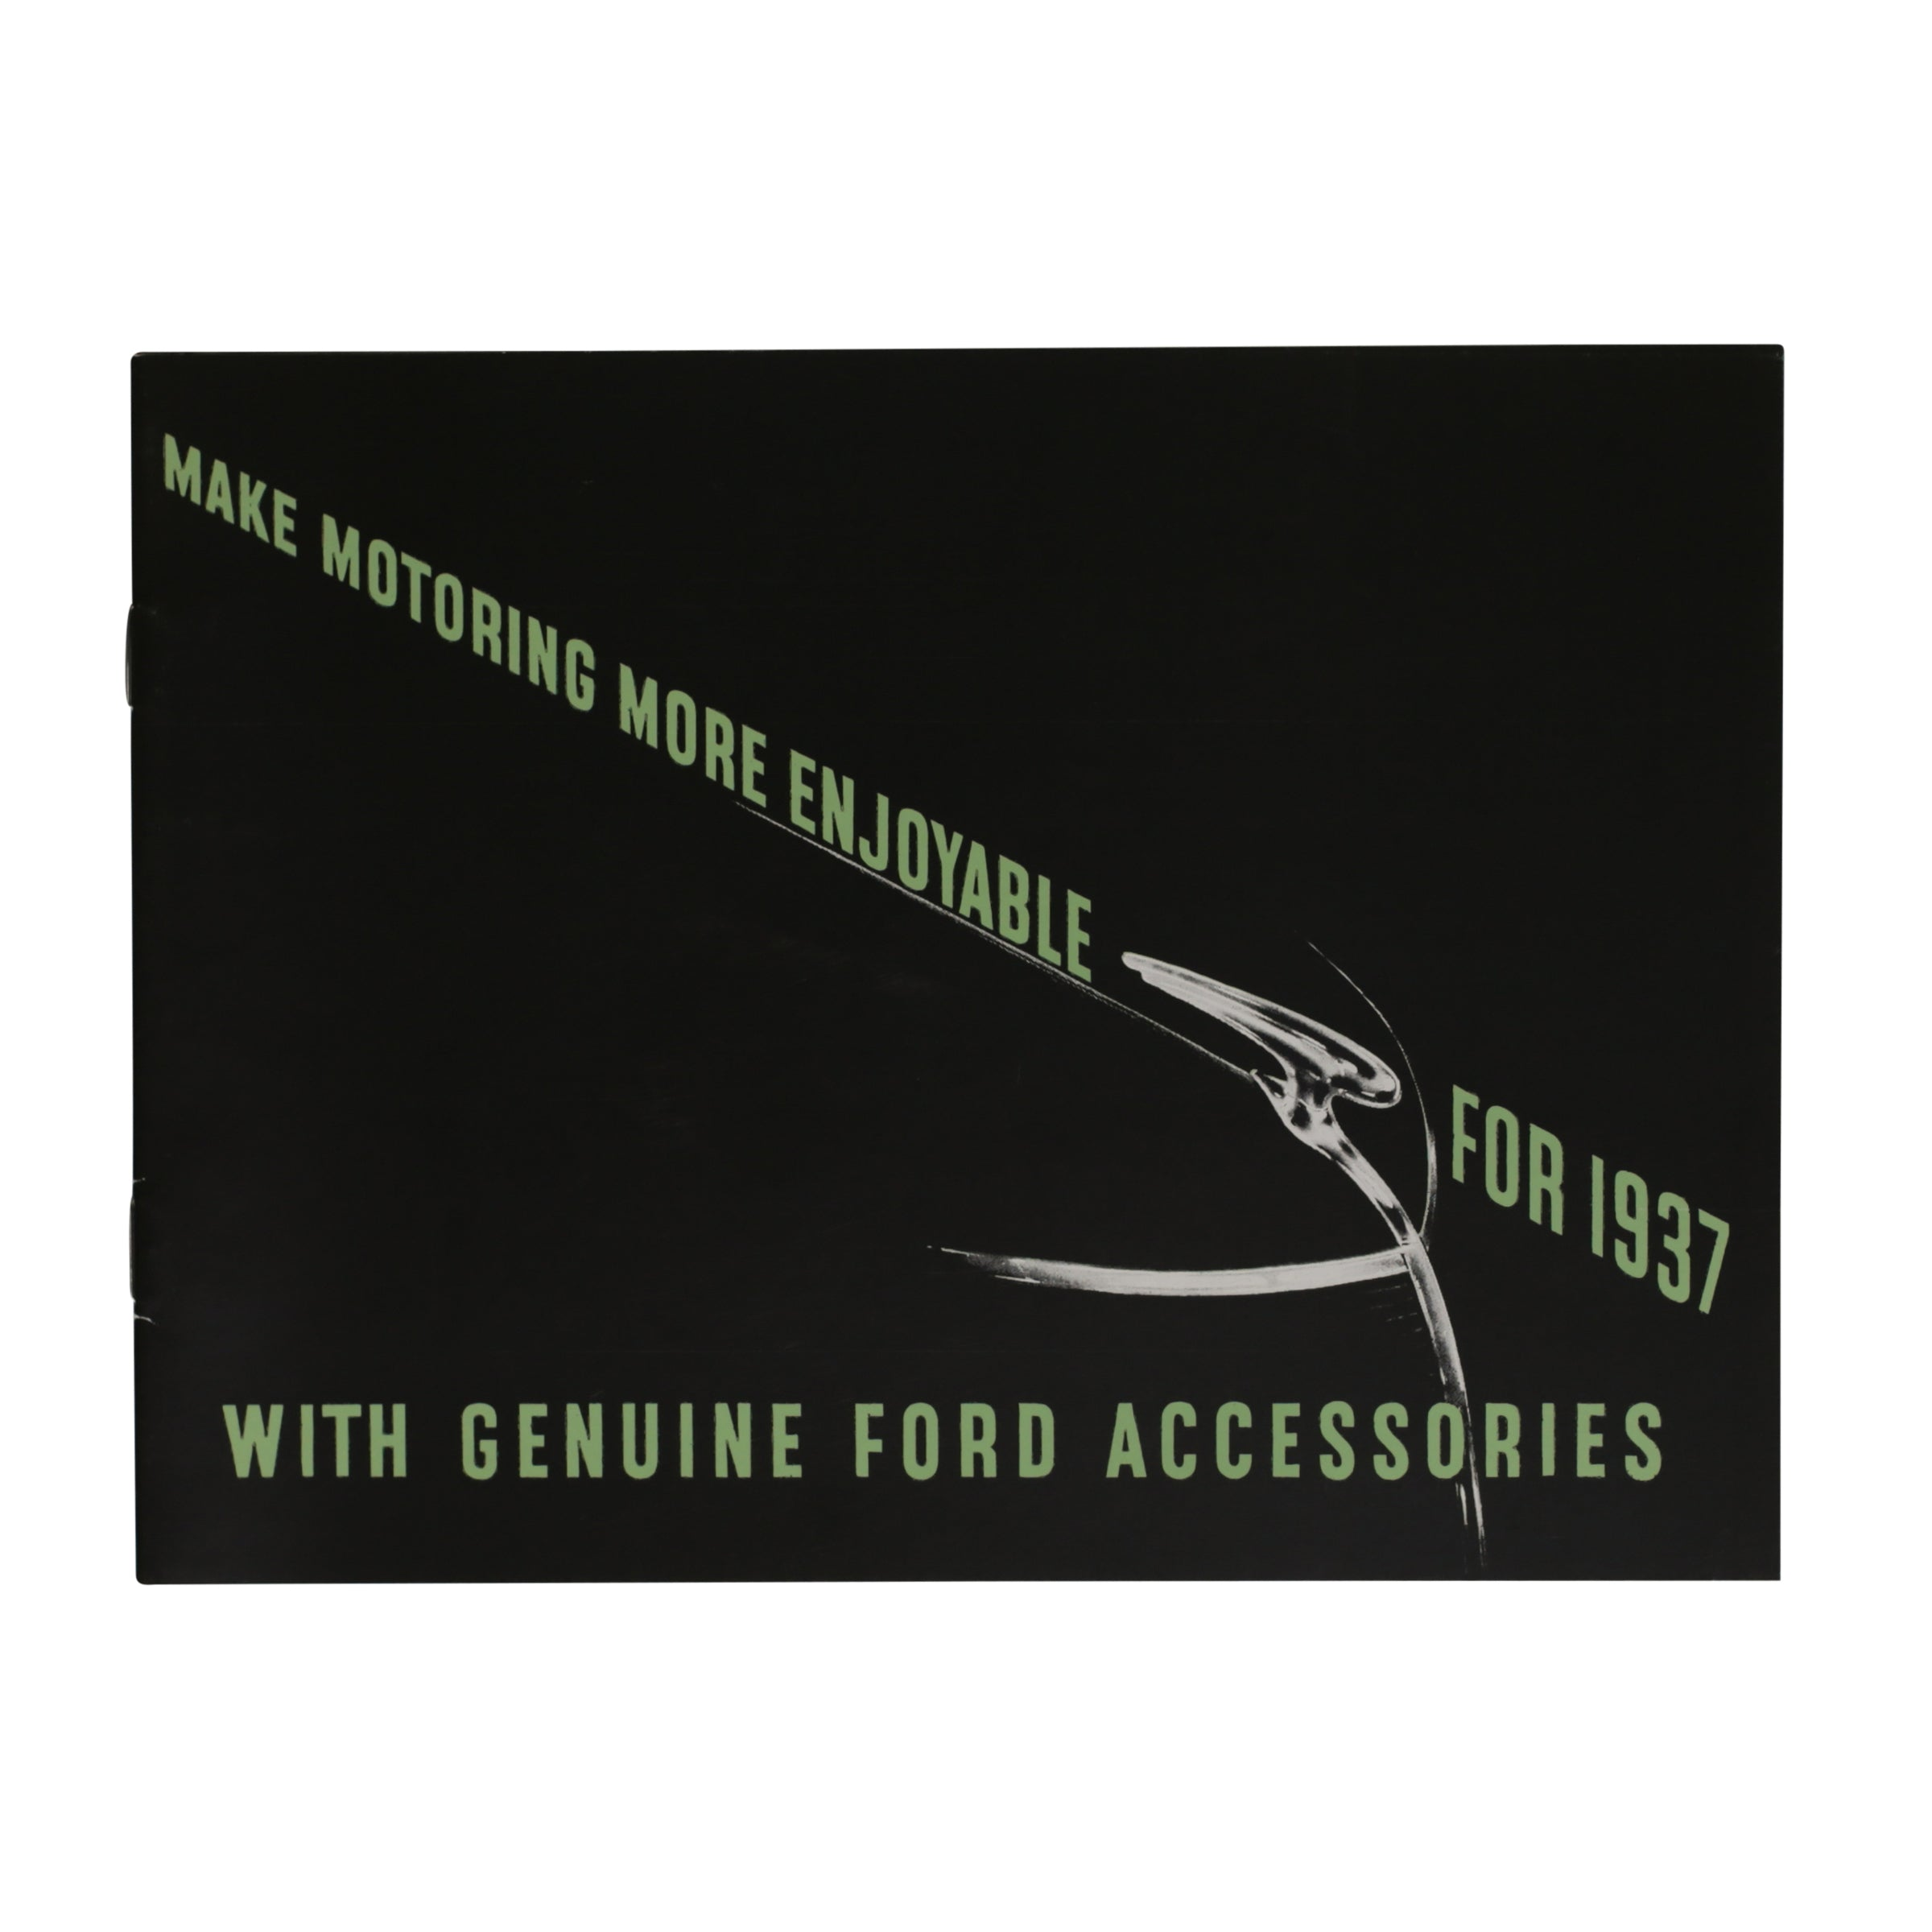 Accessories Brochure  • 1937 Ford